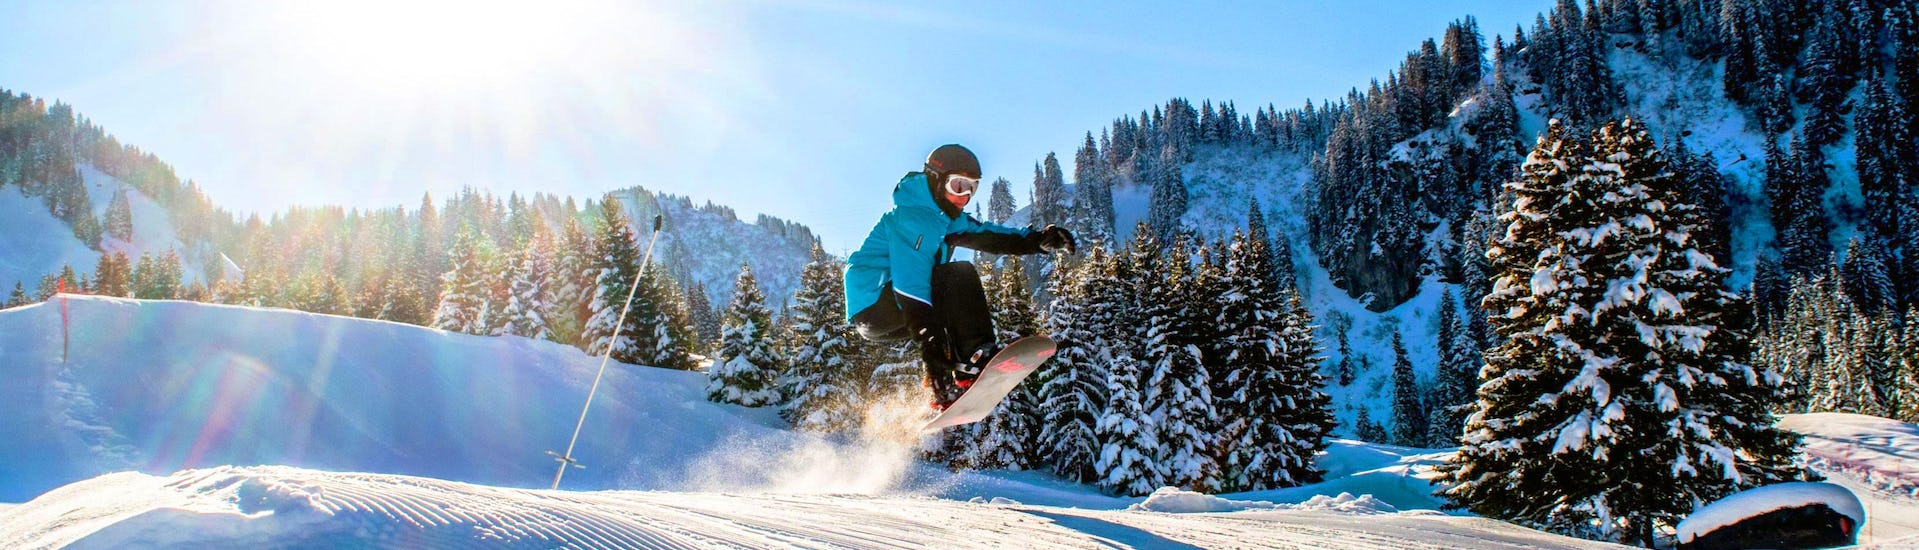 Snowboarder makes a jump in the snow-covered mountain landscape during his Private Snowboarding Lessons for Kids & Adults - All Levels with the Skibex ski school.